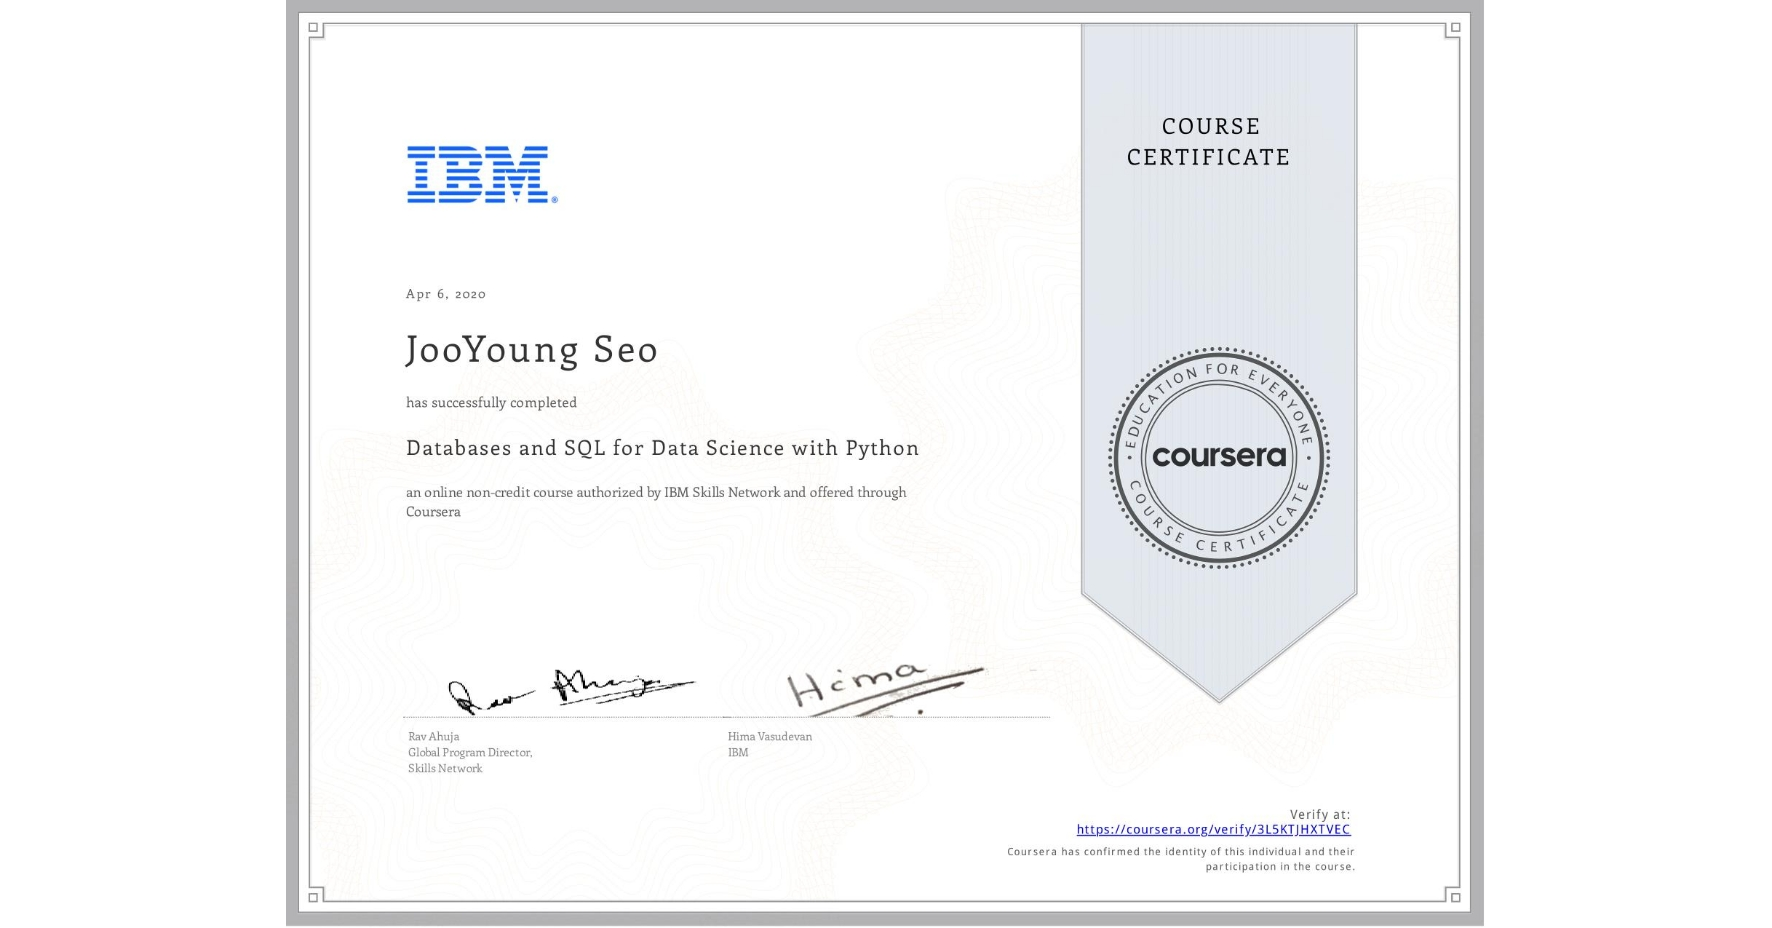 View certificate for JooYoung Seo, Databases and SQL for Data Science with Python, an online non-credit course authorized by IBM and offered through Coursera